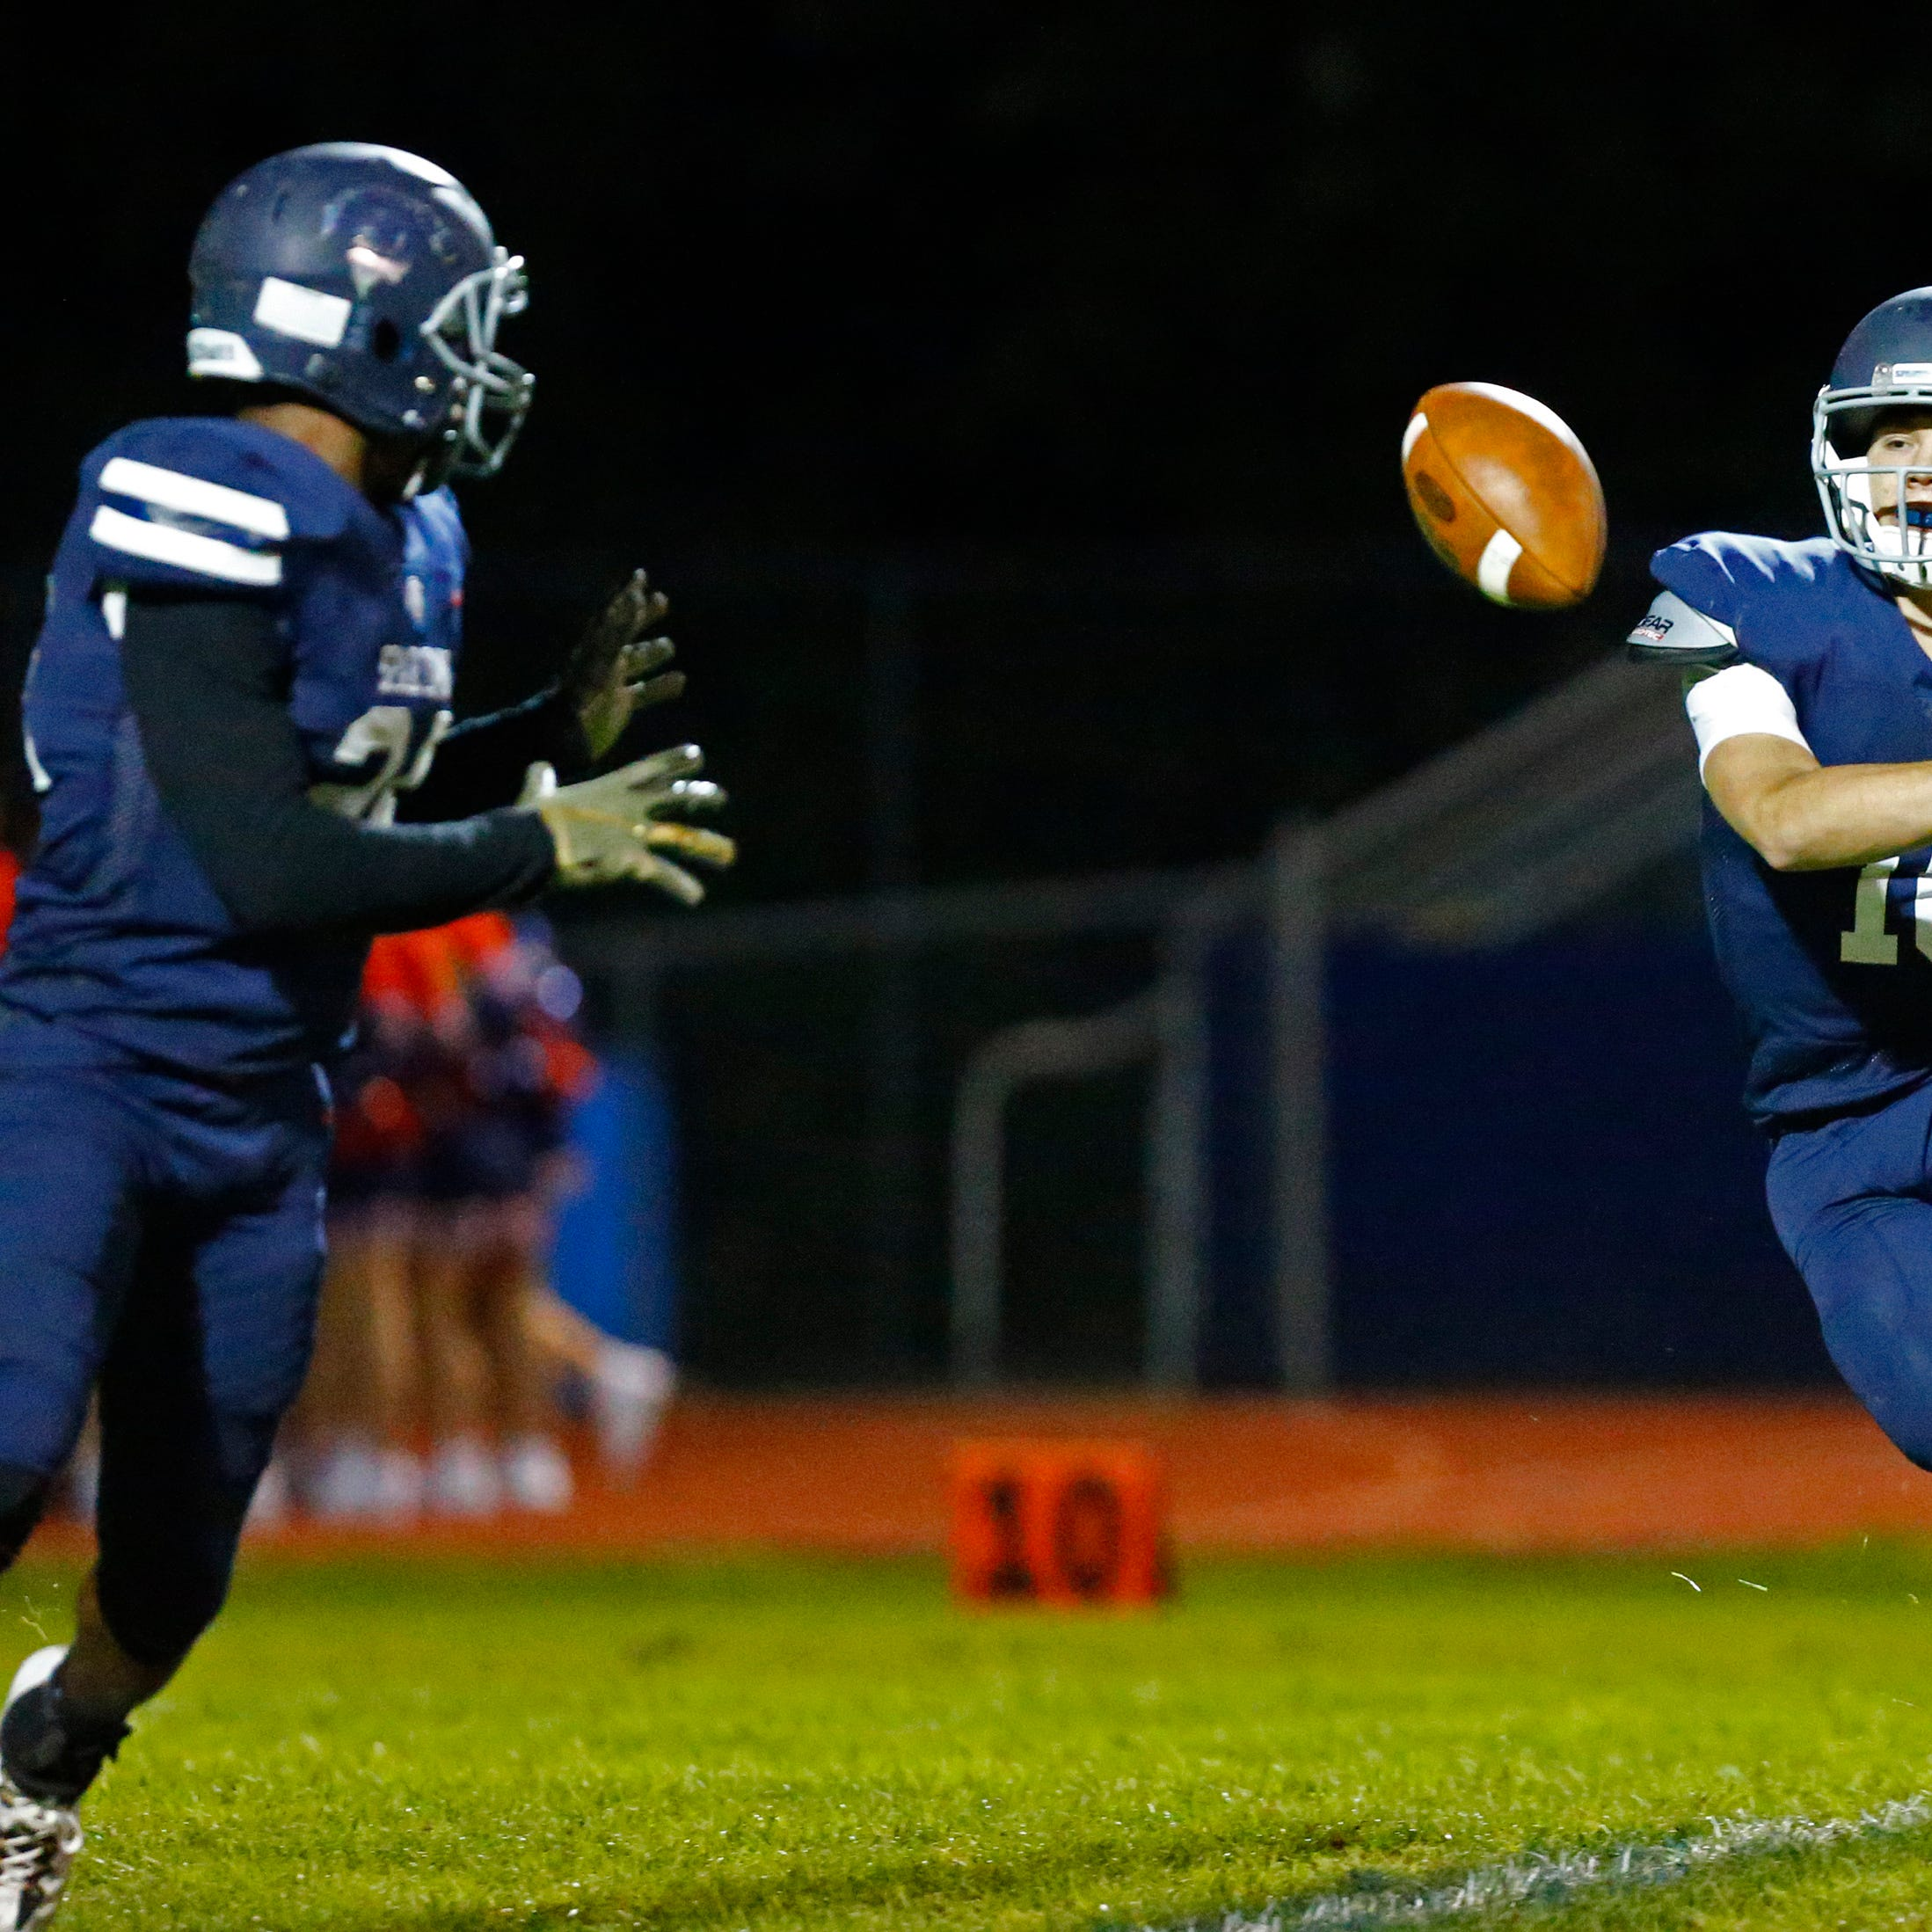 After transferring to Brookfield East, running back Donavan Hunt has found his stride